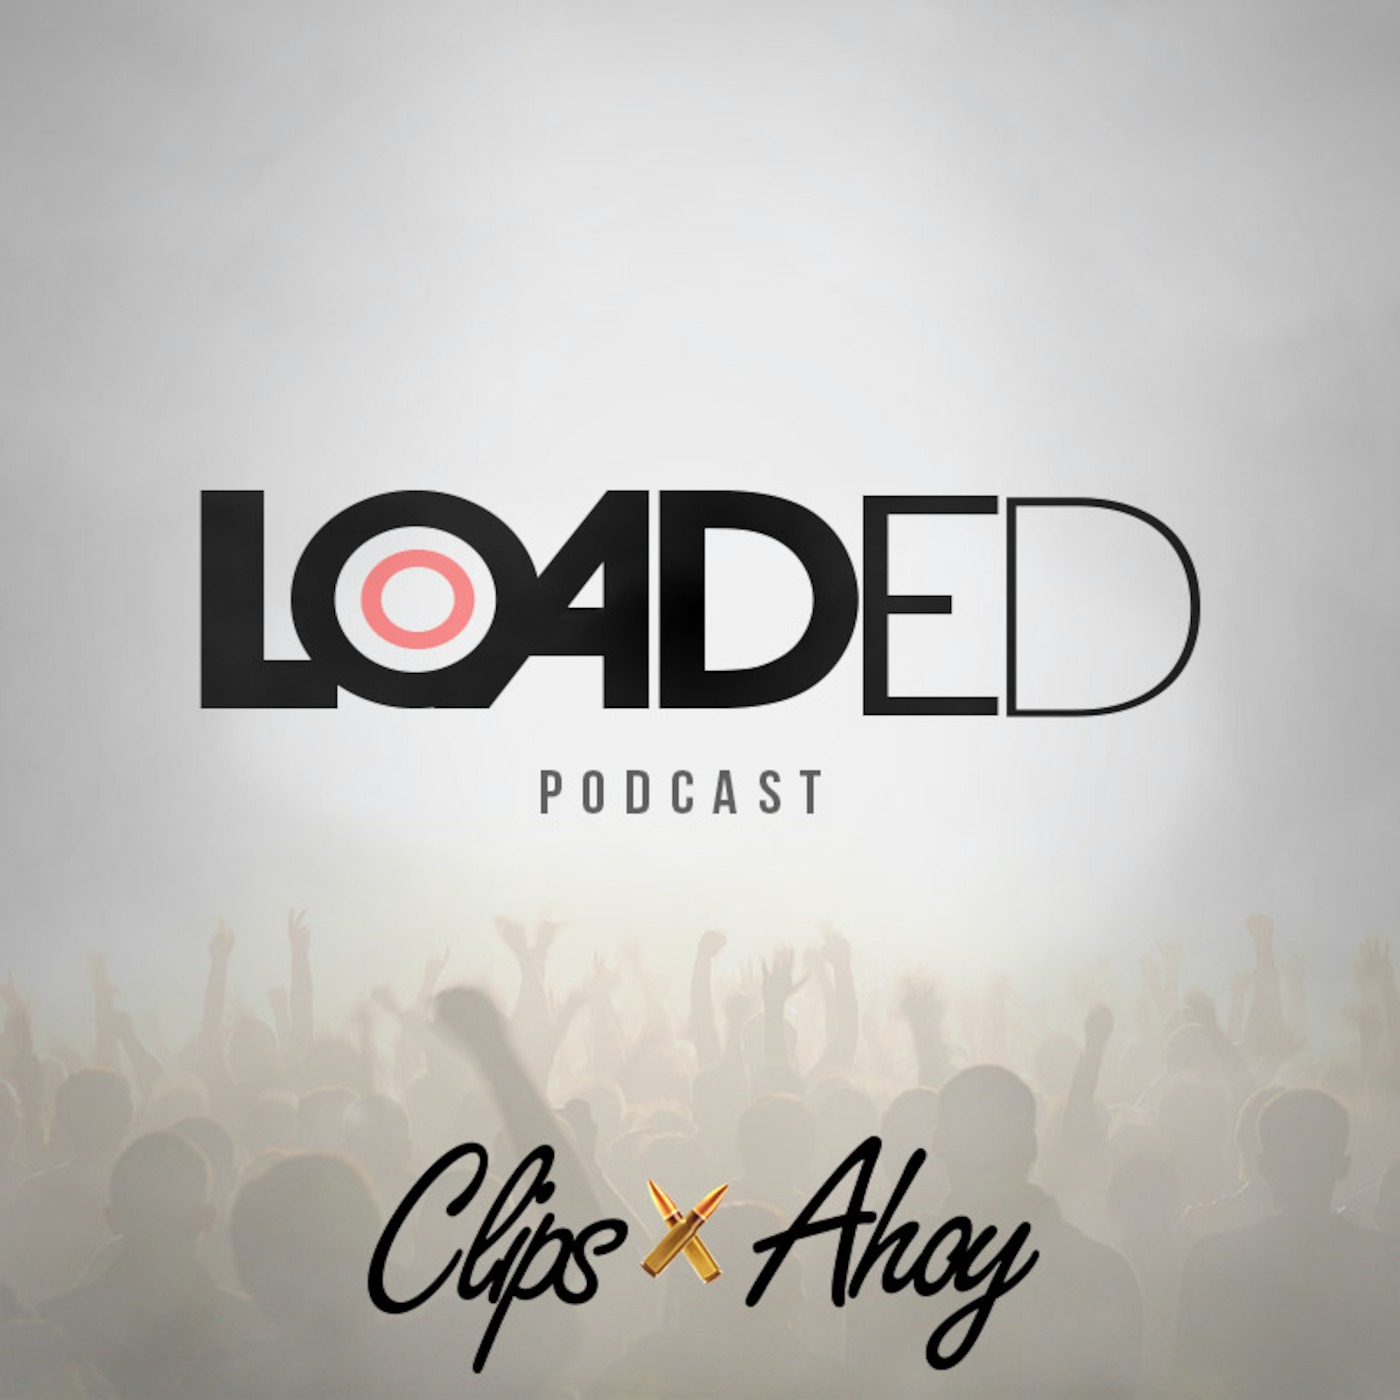 Clips X Ahoy - Loaded Podcast